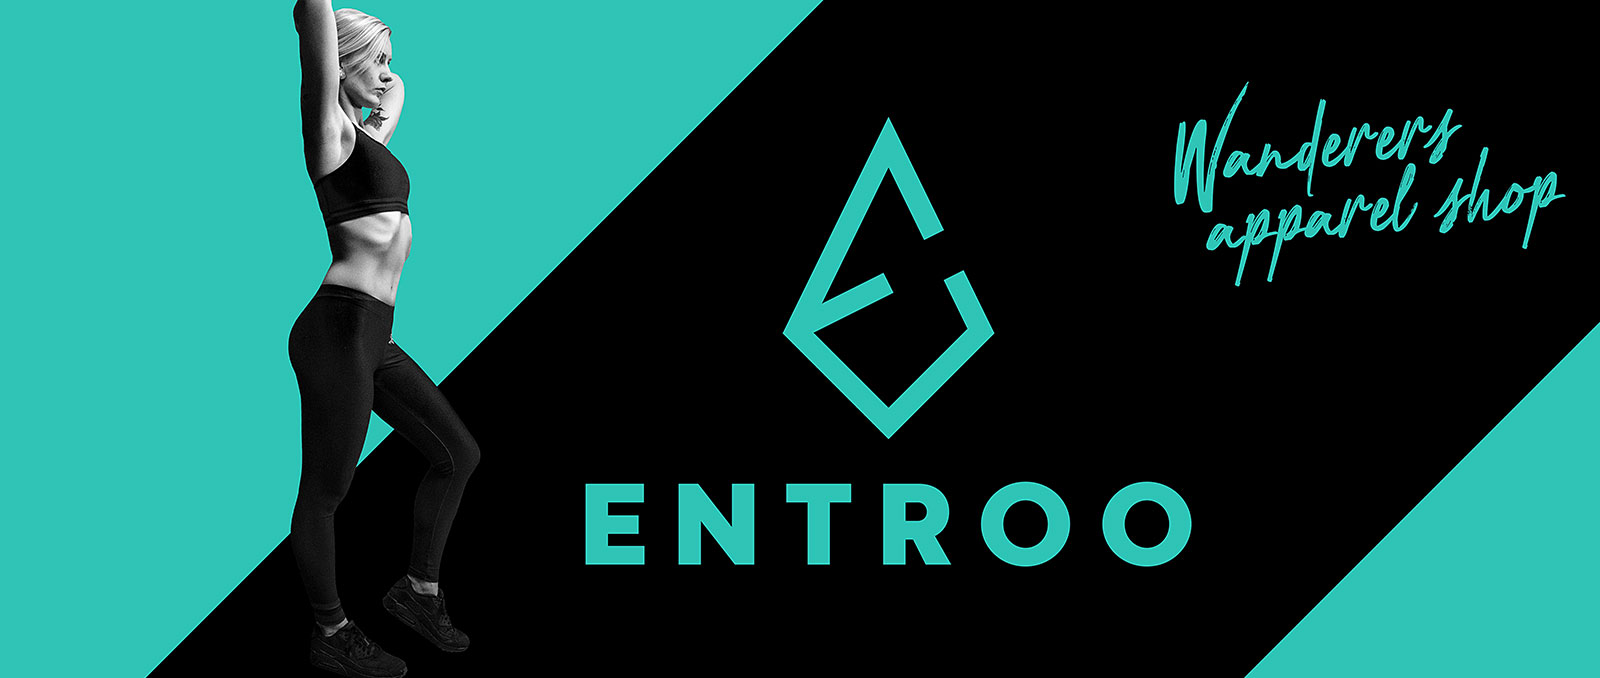 Wanderers-apparel-shop-ENTROO_About-Us